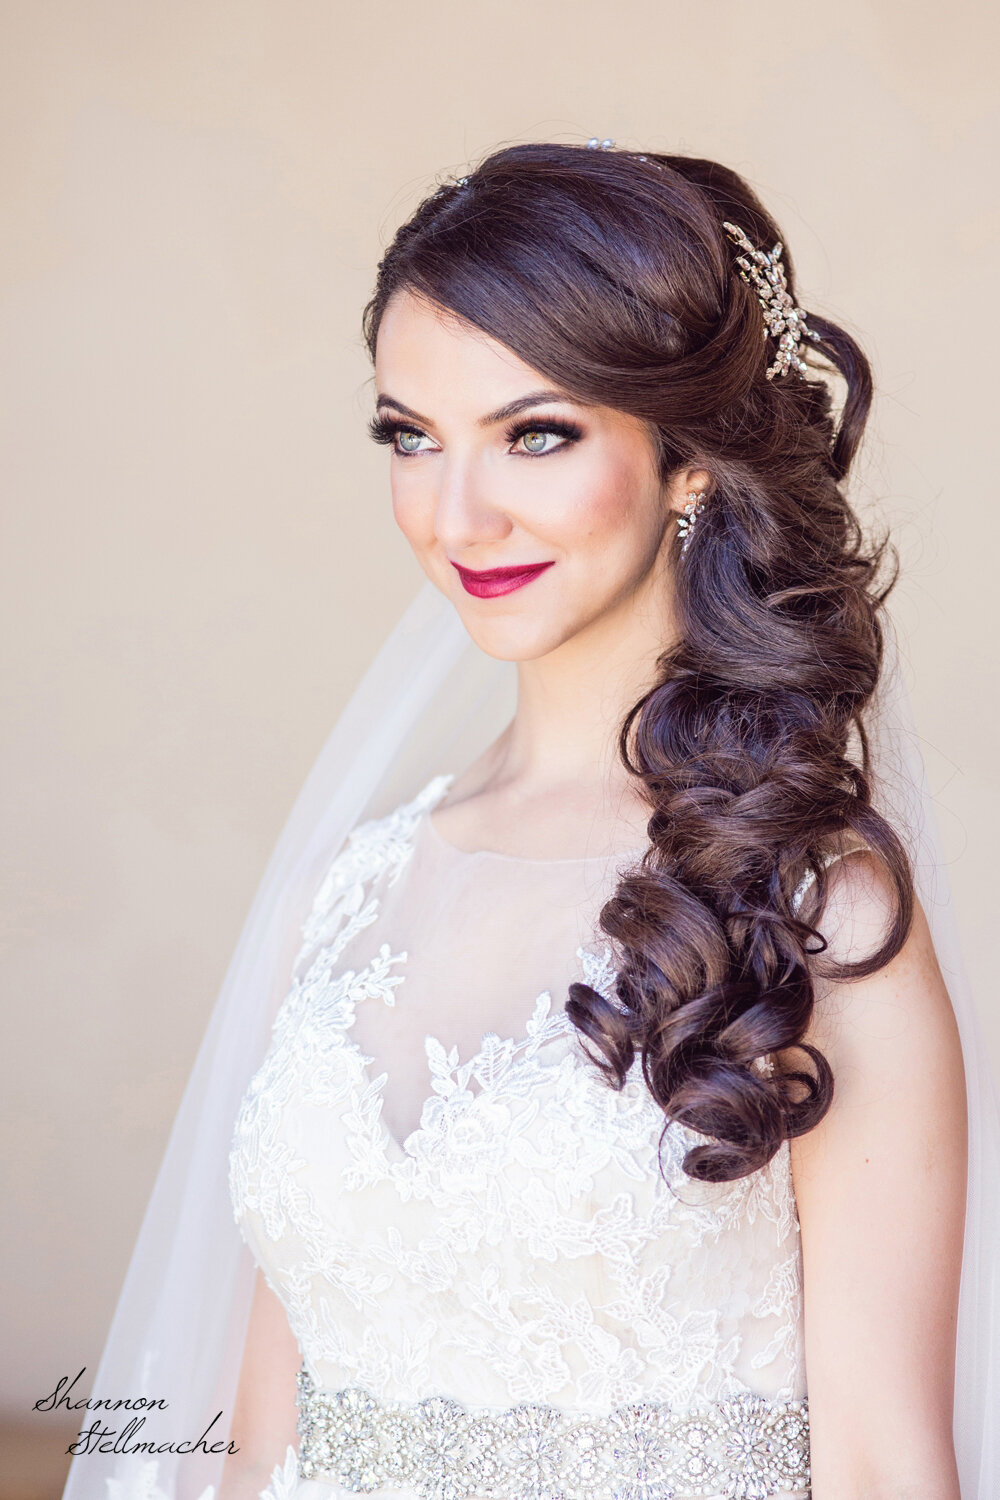 Bridal Makeup for Green Eyes Bay Area Sonoma Weddings Best.jpg